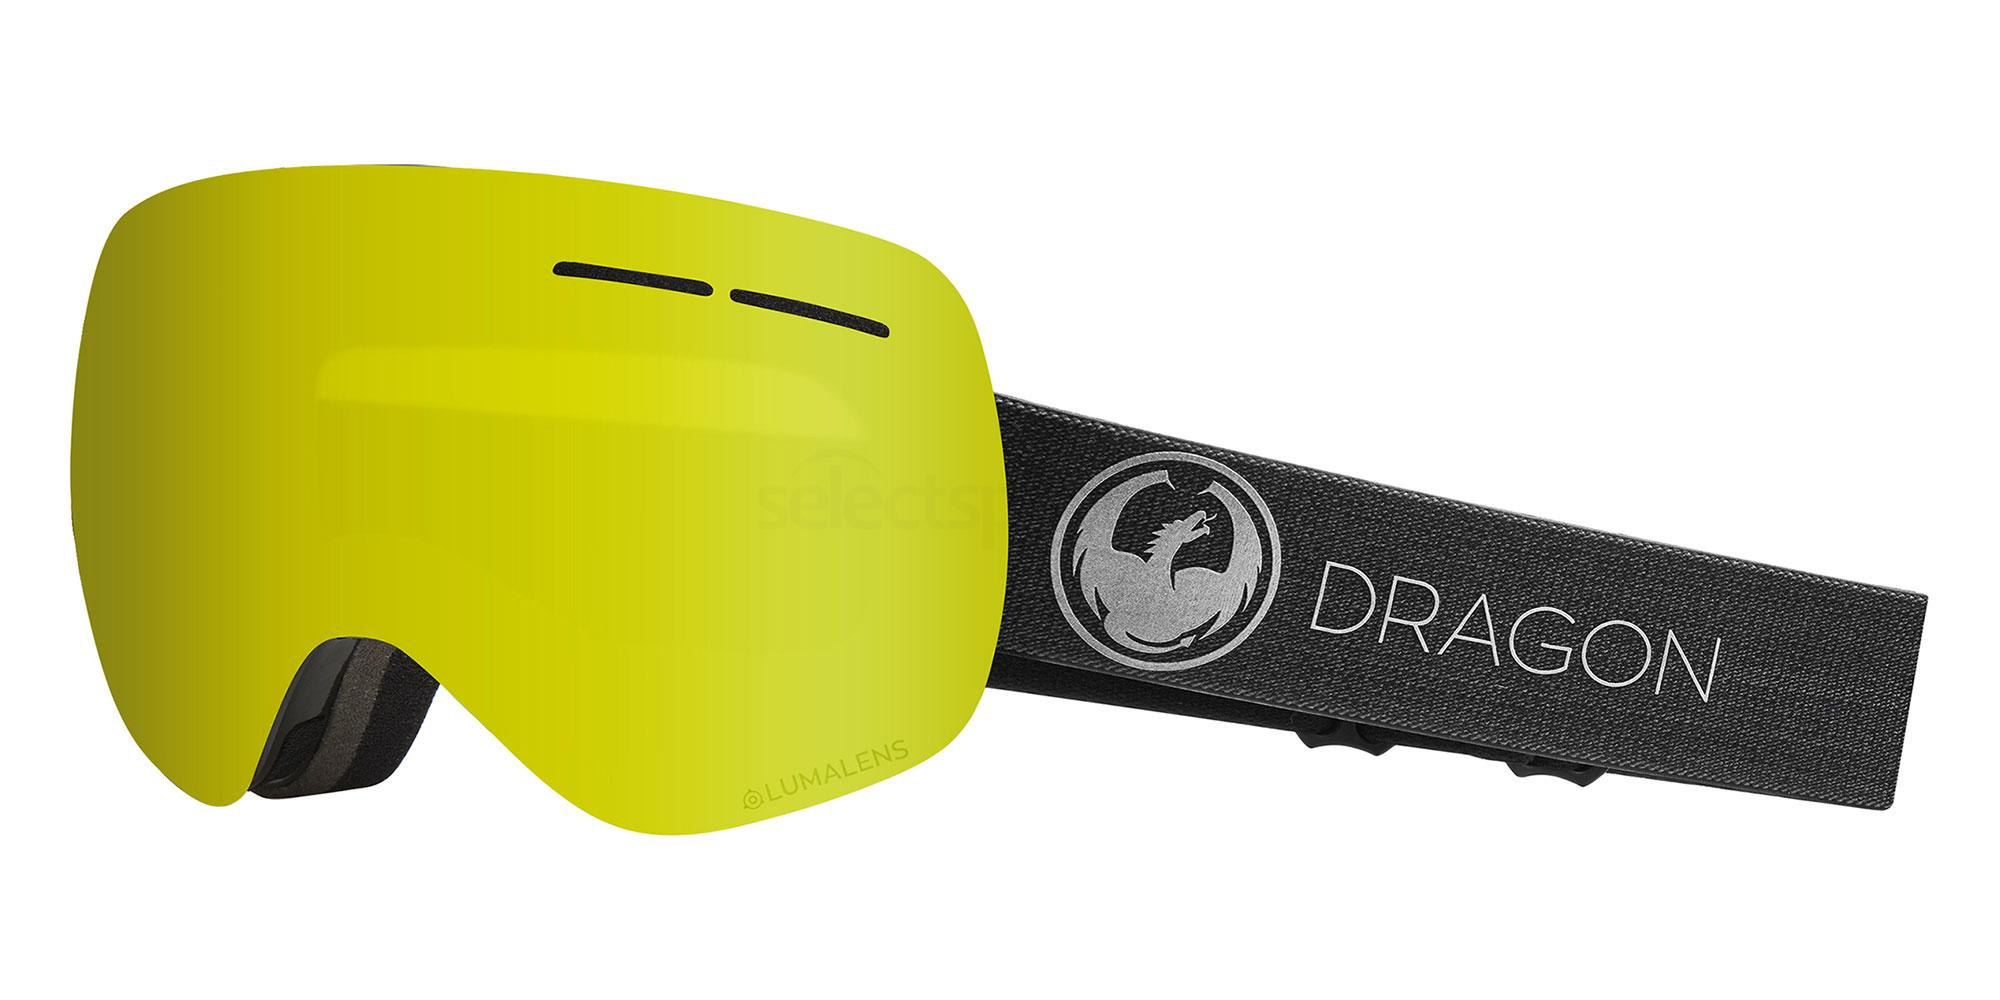 338 DR X1S NEW PH Goggles, Dragon